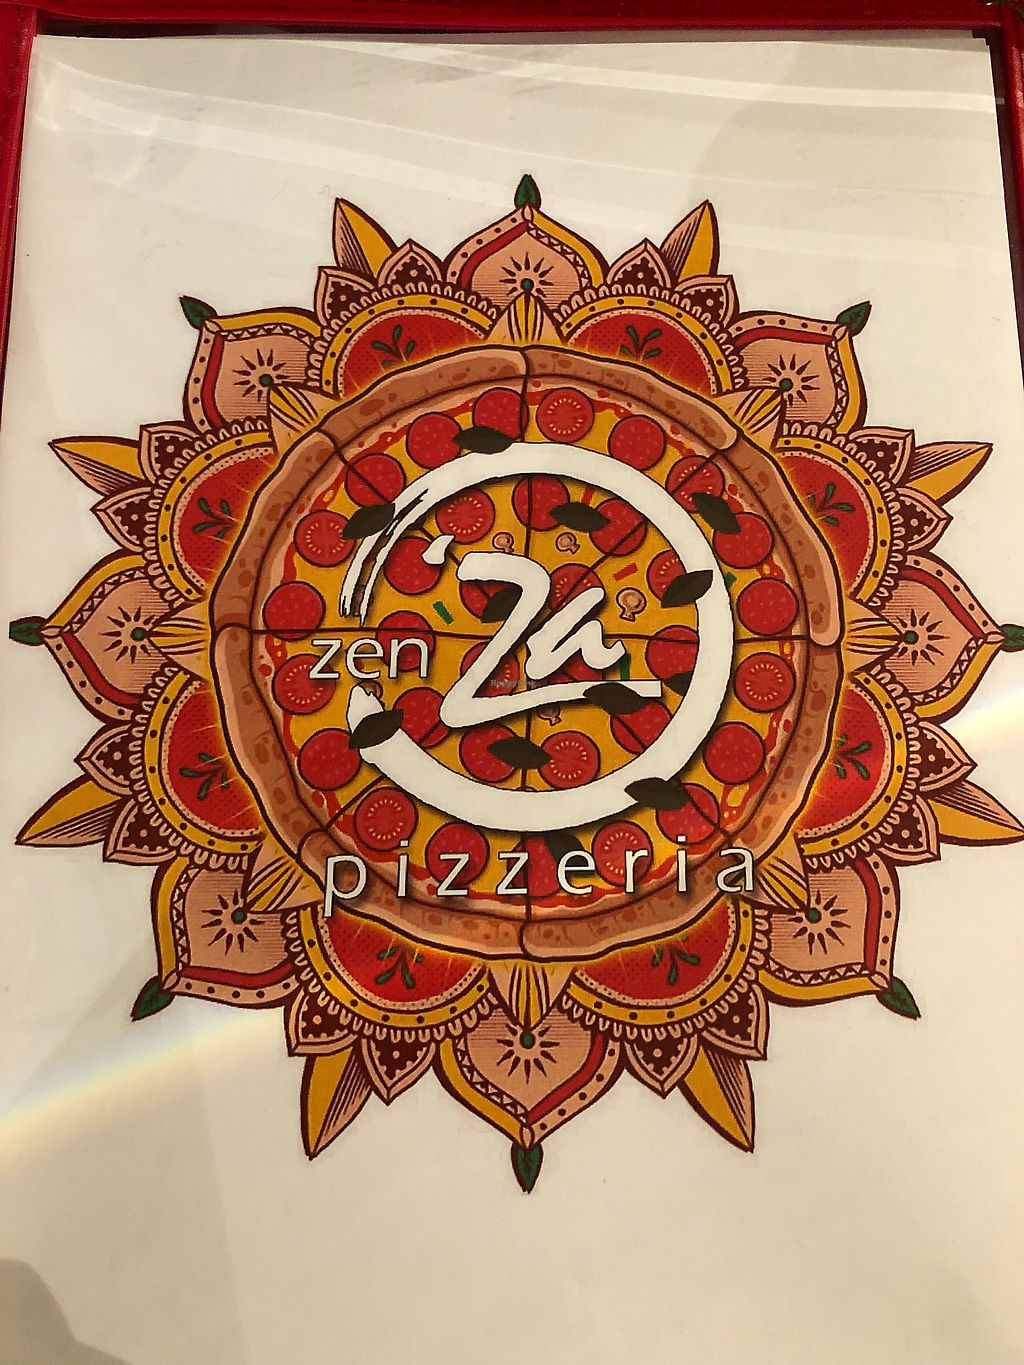 """Photo of Zen'za  by <a href=""""/members/profile/veronikastealz"""">veronikastealz</a> <br/>New logo! Woohoo!  <br/> February 24, 2018  - <a href='/contact/abuse/image/87252/362943'>Report</a>"""